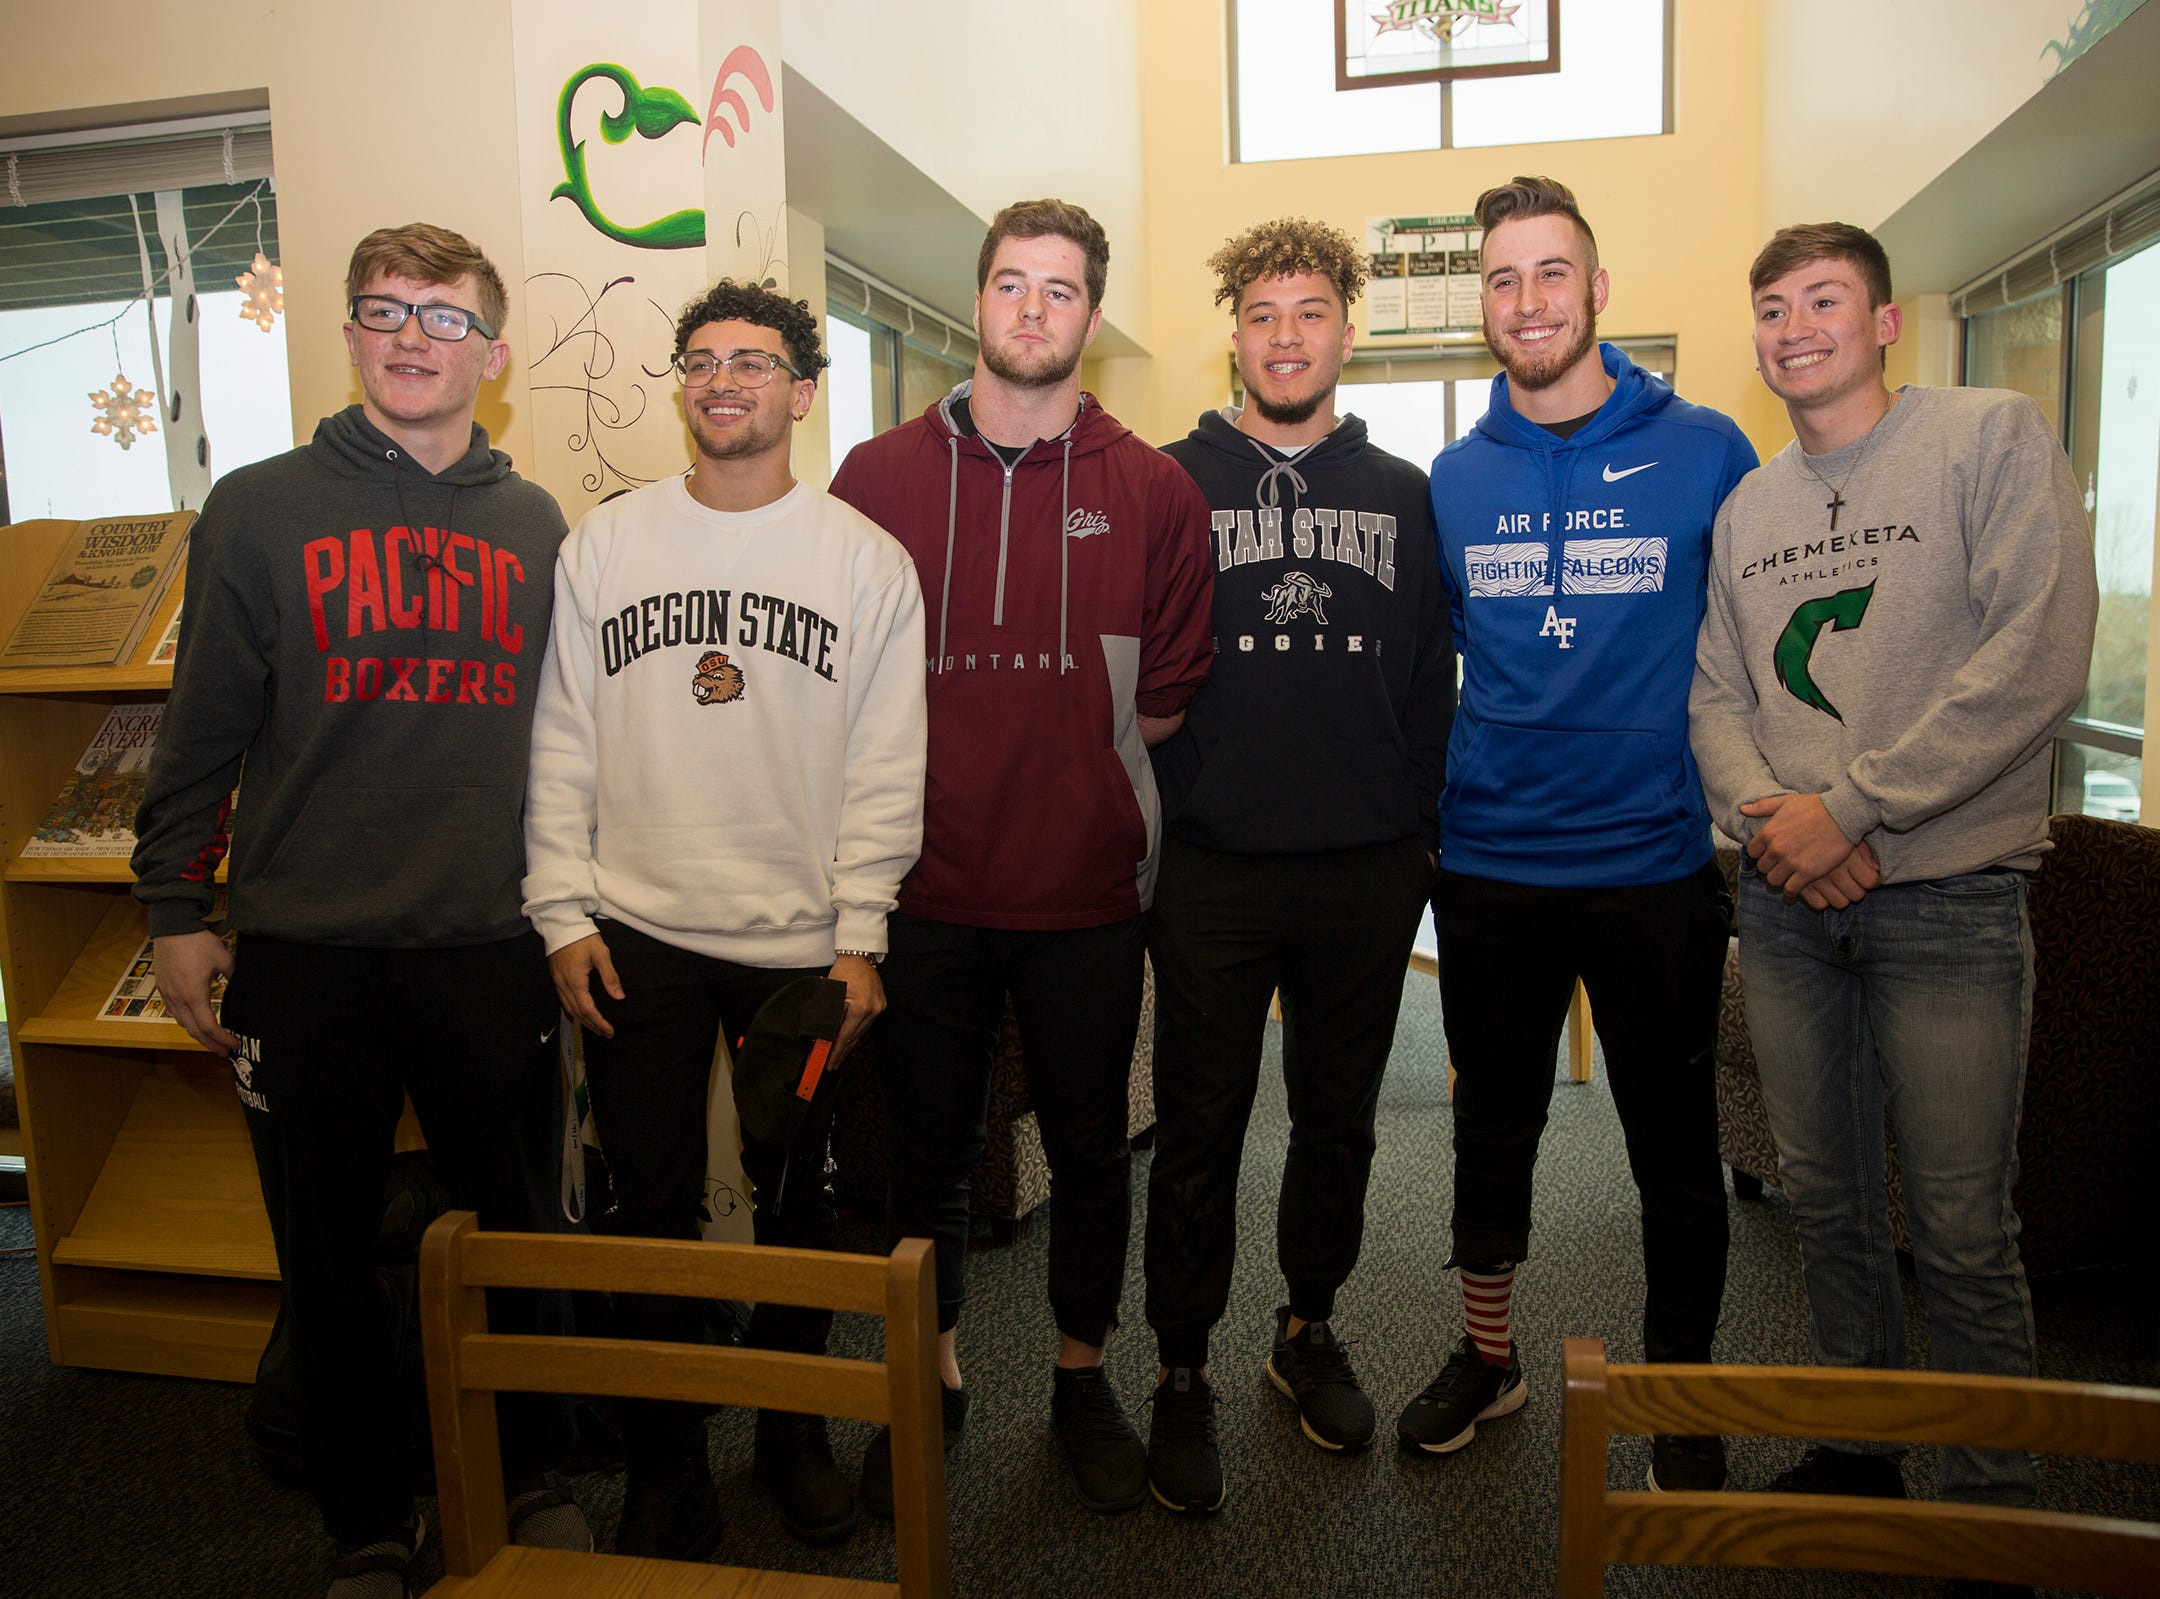 West Salem High School senior athletes pose after signing to their respective colleges in the school library on Wednesday, Dec. 19, 2018.